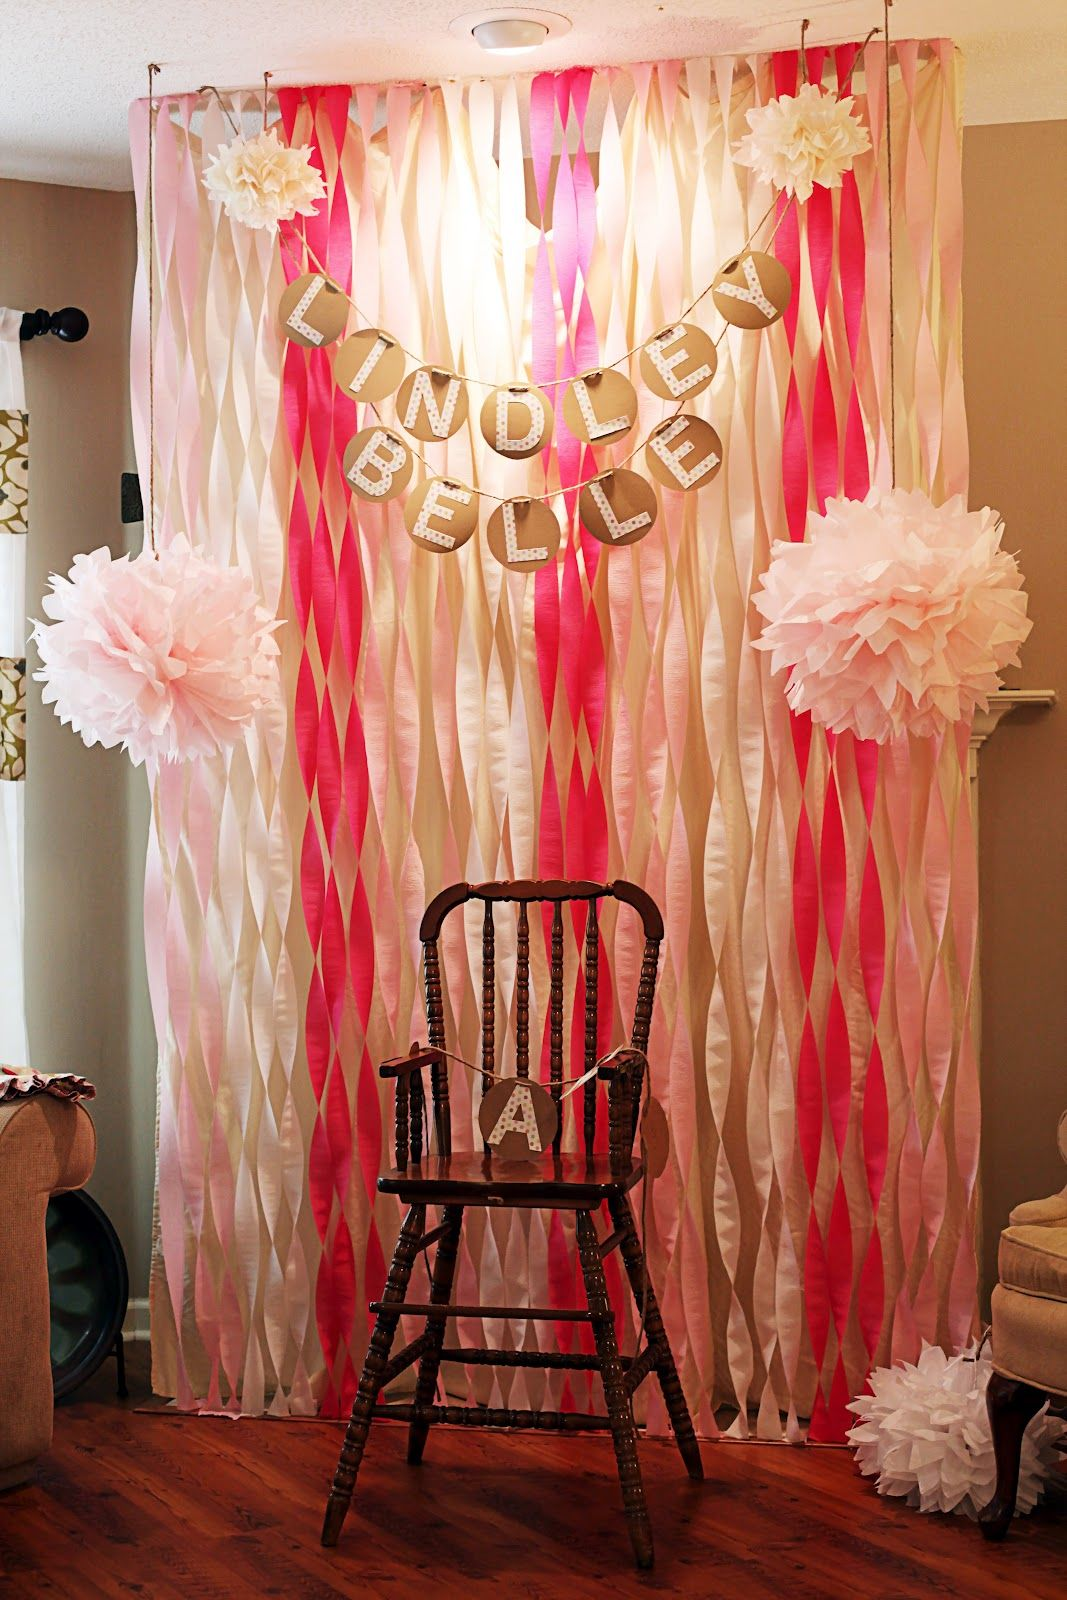 High Chair Decor Baby Birthday Backdrops For Parties